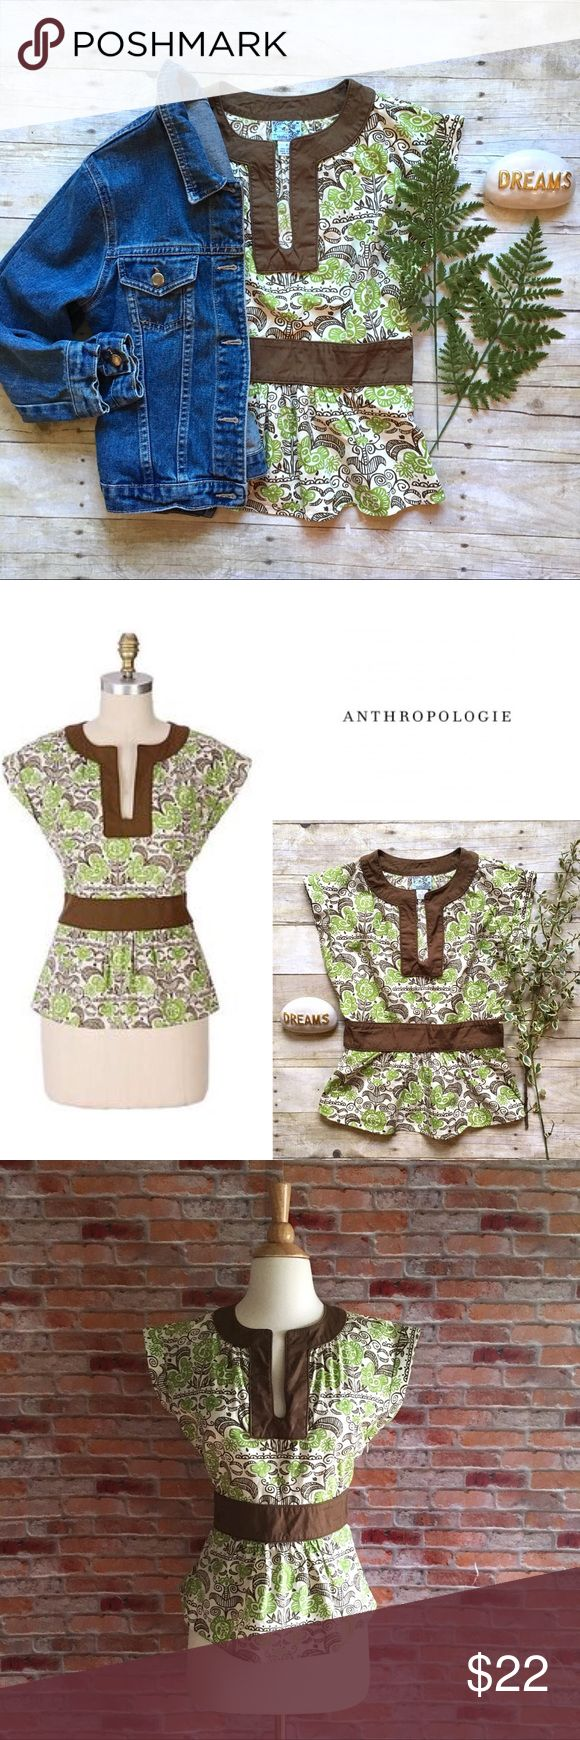 "Anthropologie Tabitha spring green top Tabitha's Lake Geneva Top Swiss flowers blossom on a field of crisp lawn cotton. Split neck. Patterned cotton with brown banded detail. Side zip. Cotton. Like new. 22.5""L. 16.5"" bust, 13.5"" waist both laying flat. Size 2. Shown on size 2-4 dress form. *Anthro jean jacket pictured is also available in my closet, buy the look and save!    {Location B5} Anthropologie Tops Blouses"